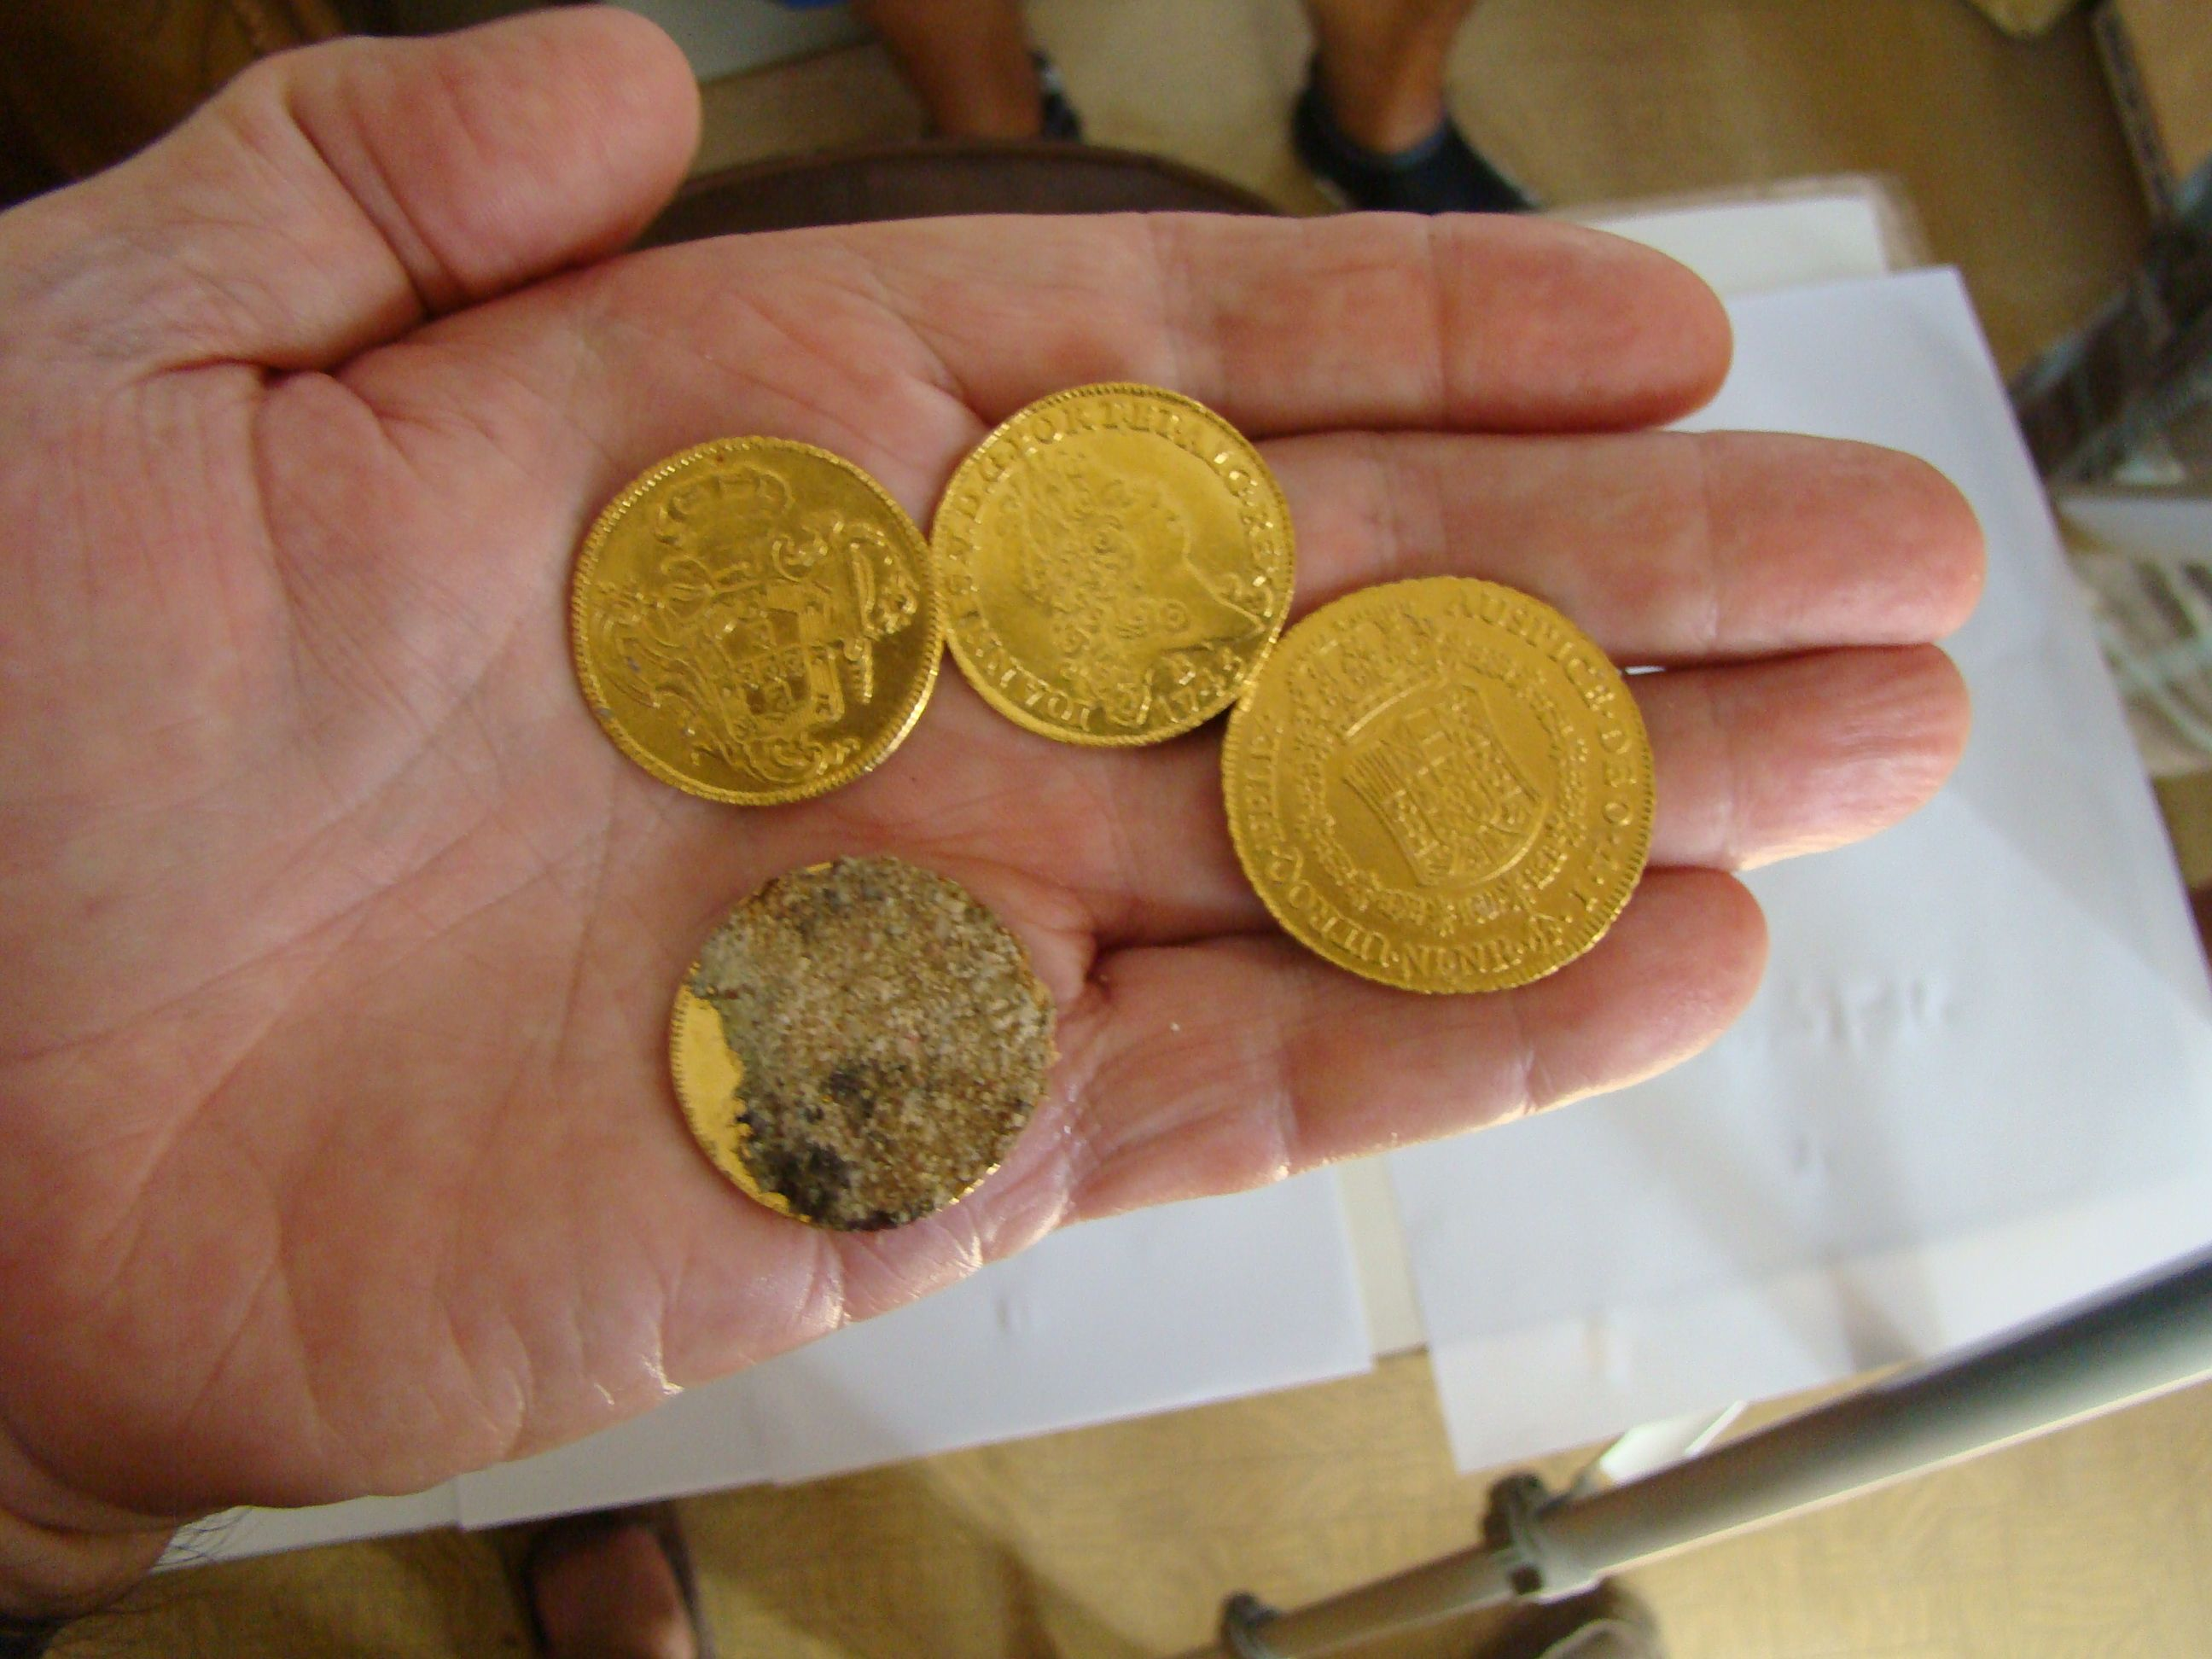 Some Of The Many Gold Coins We Were Finding At